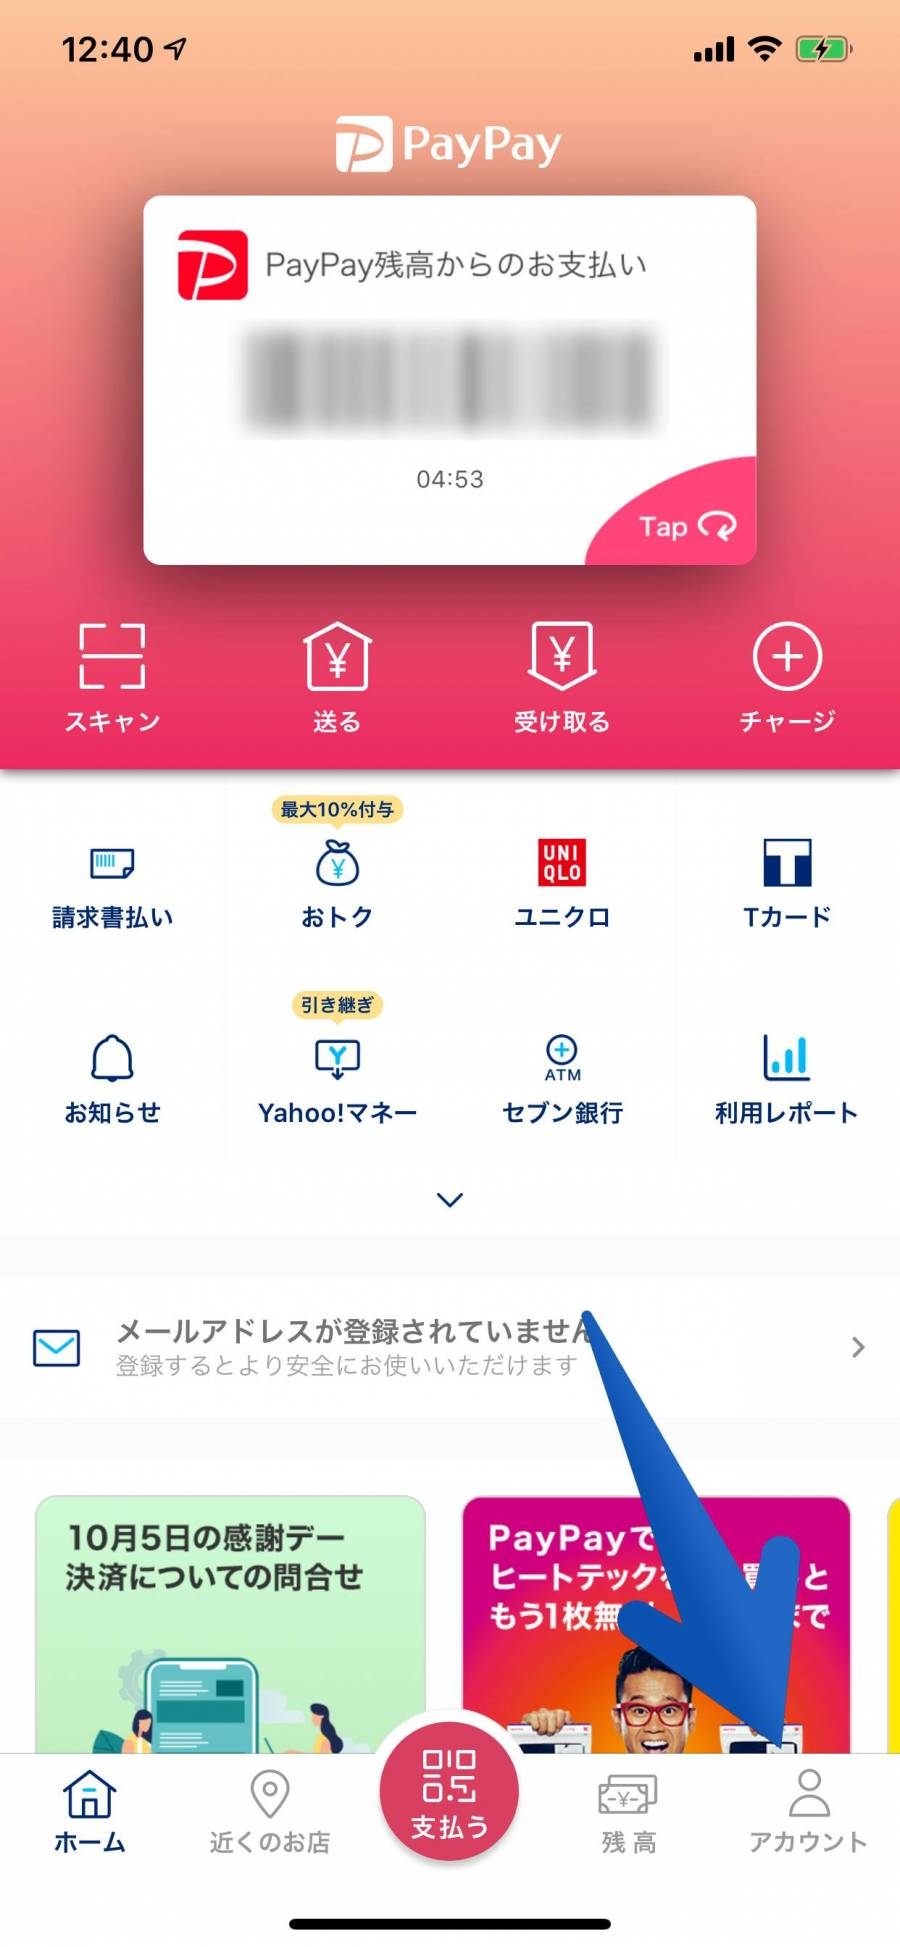 PayPayアプリ TOP画面